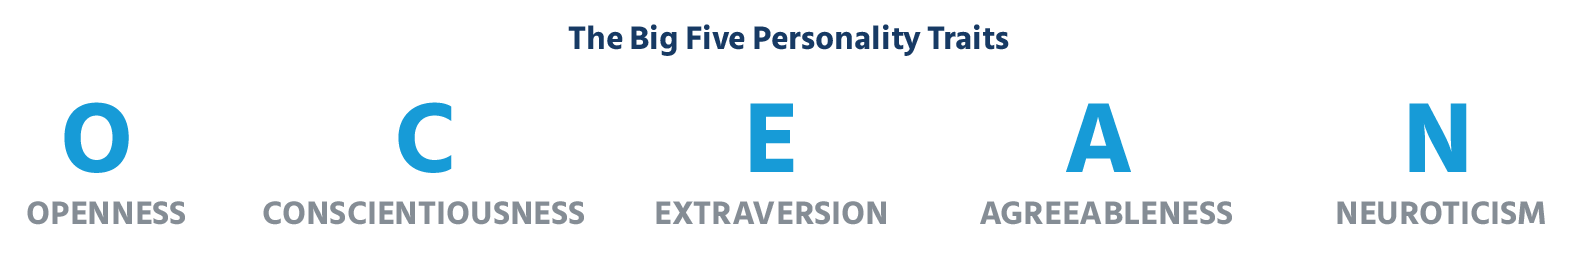 big_five_personality_traits